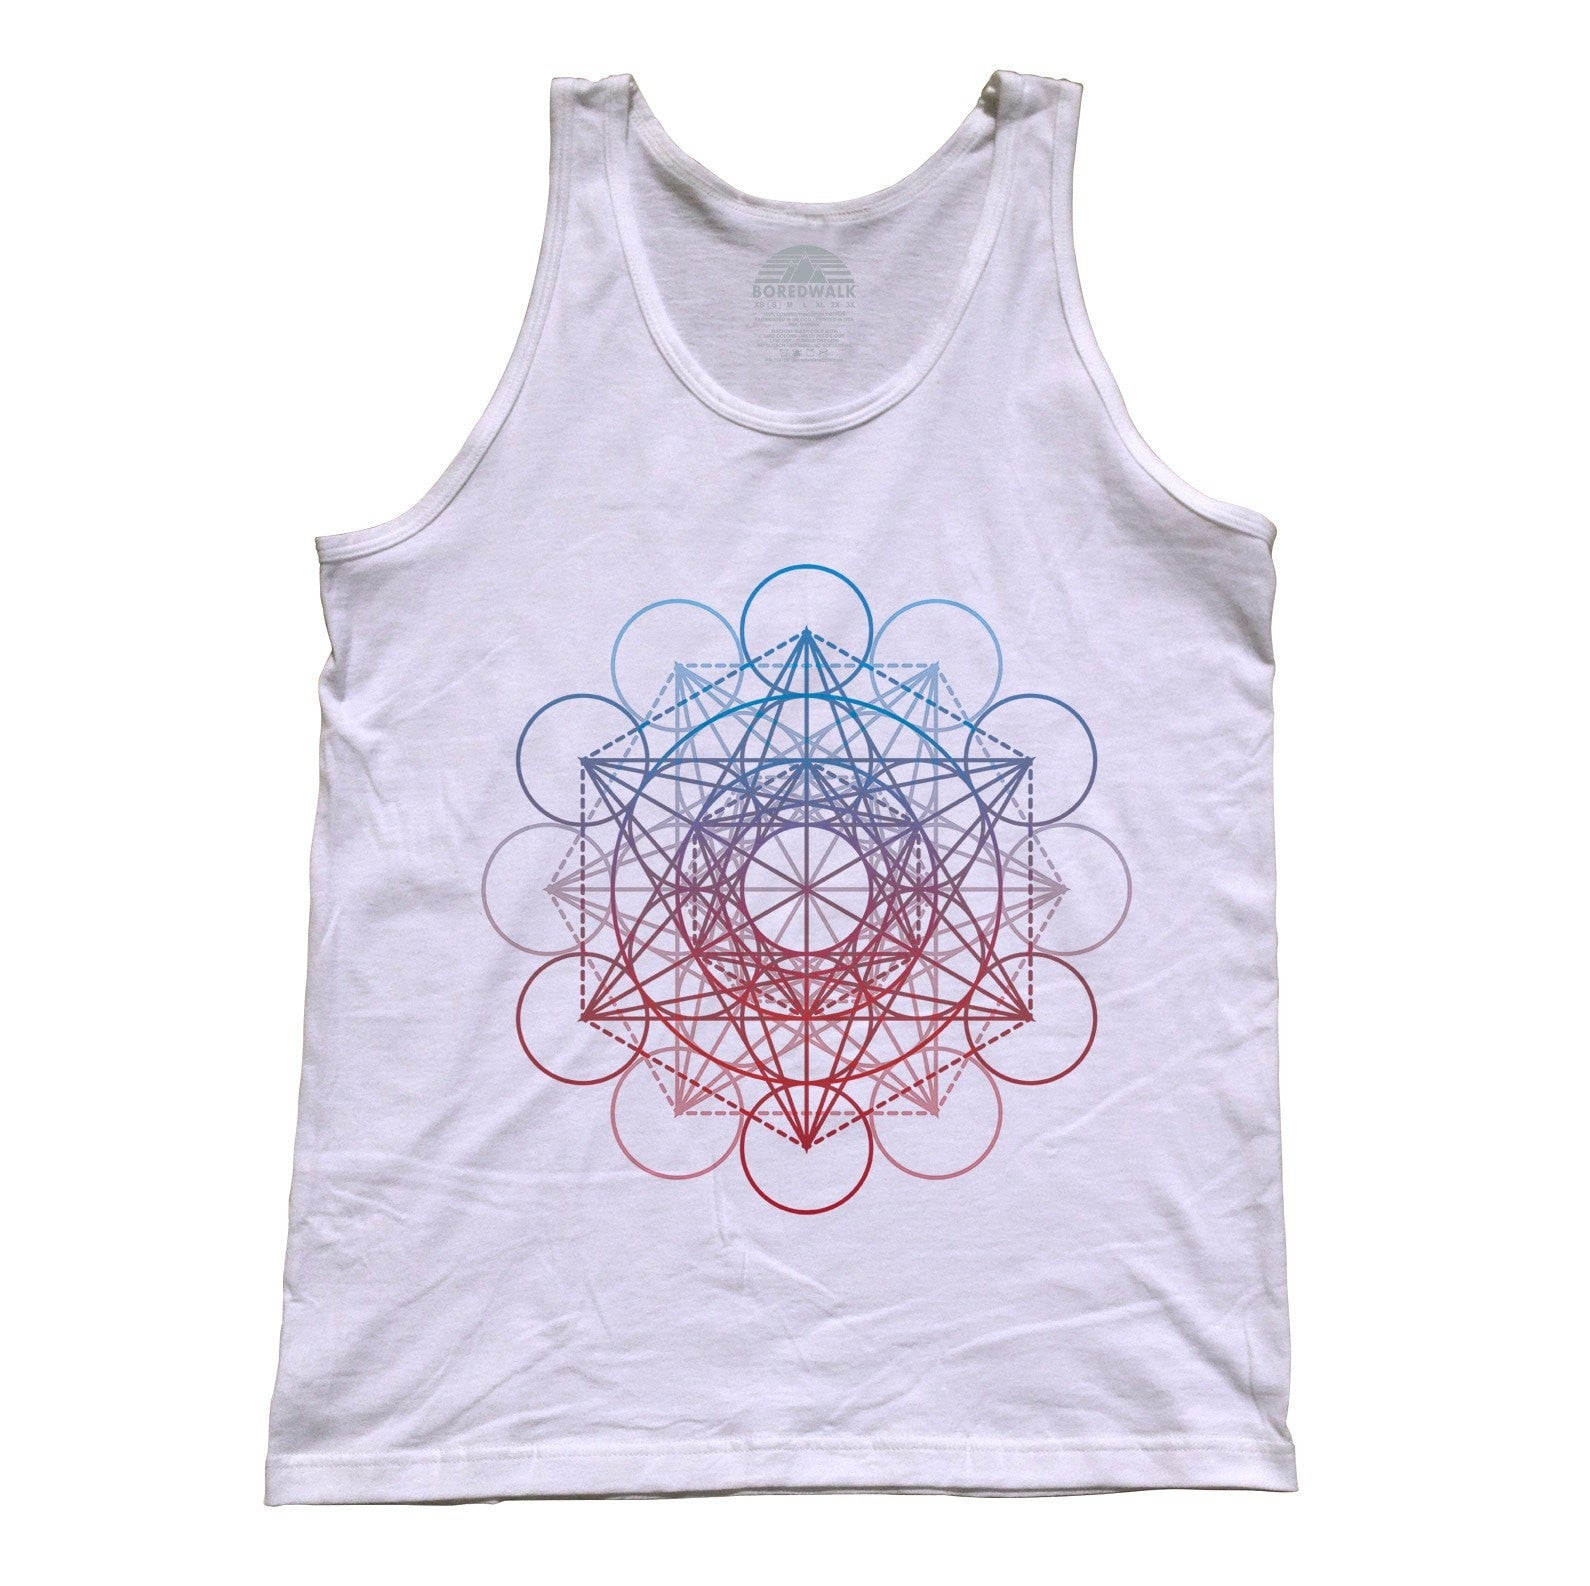 Unisex Metatrons Cube Rainbow Tank Top Geometric Crystal New Age Yoga